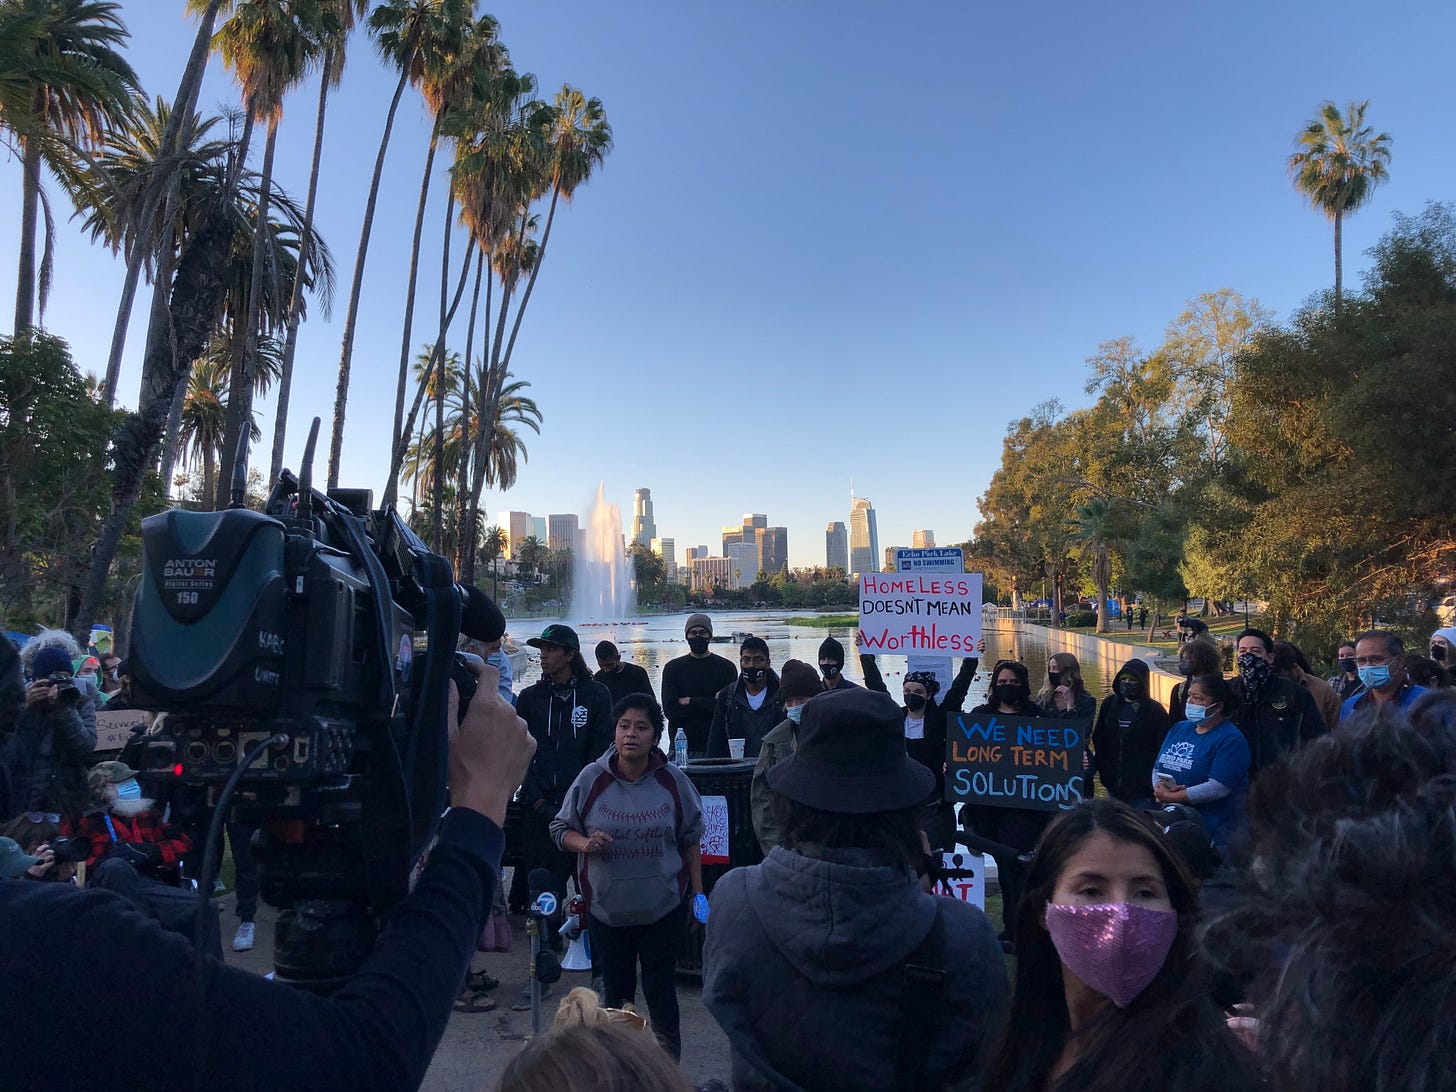 News cameras videotape a crowd of people holding a press conference. Palm trees and skyscrapers in the background.